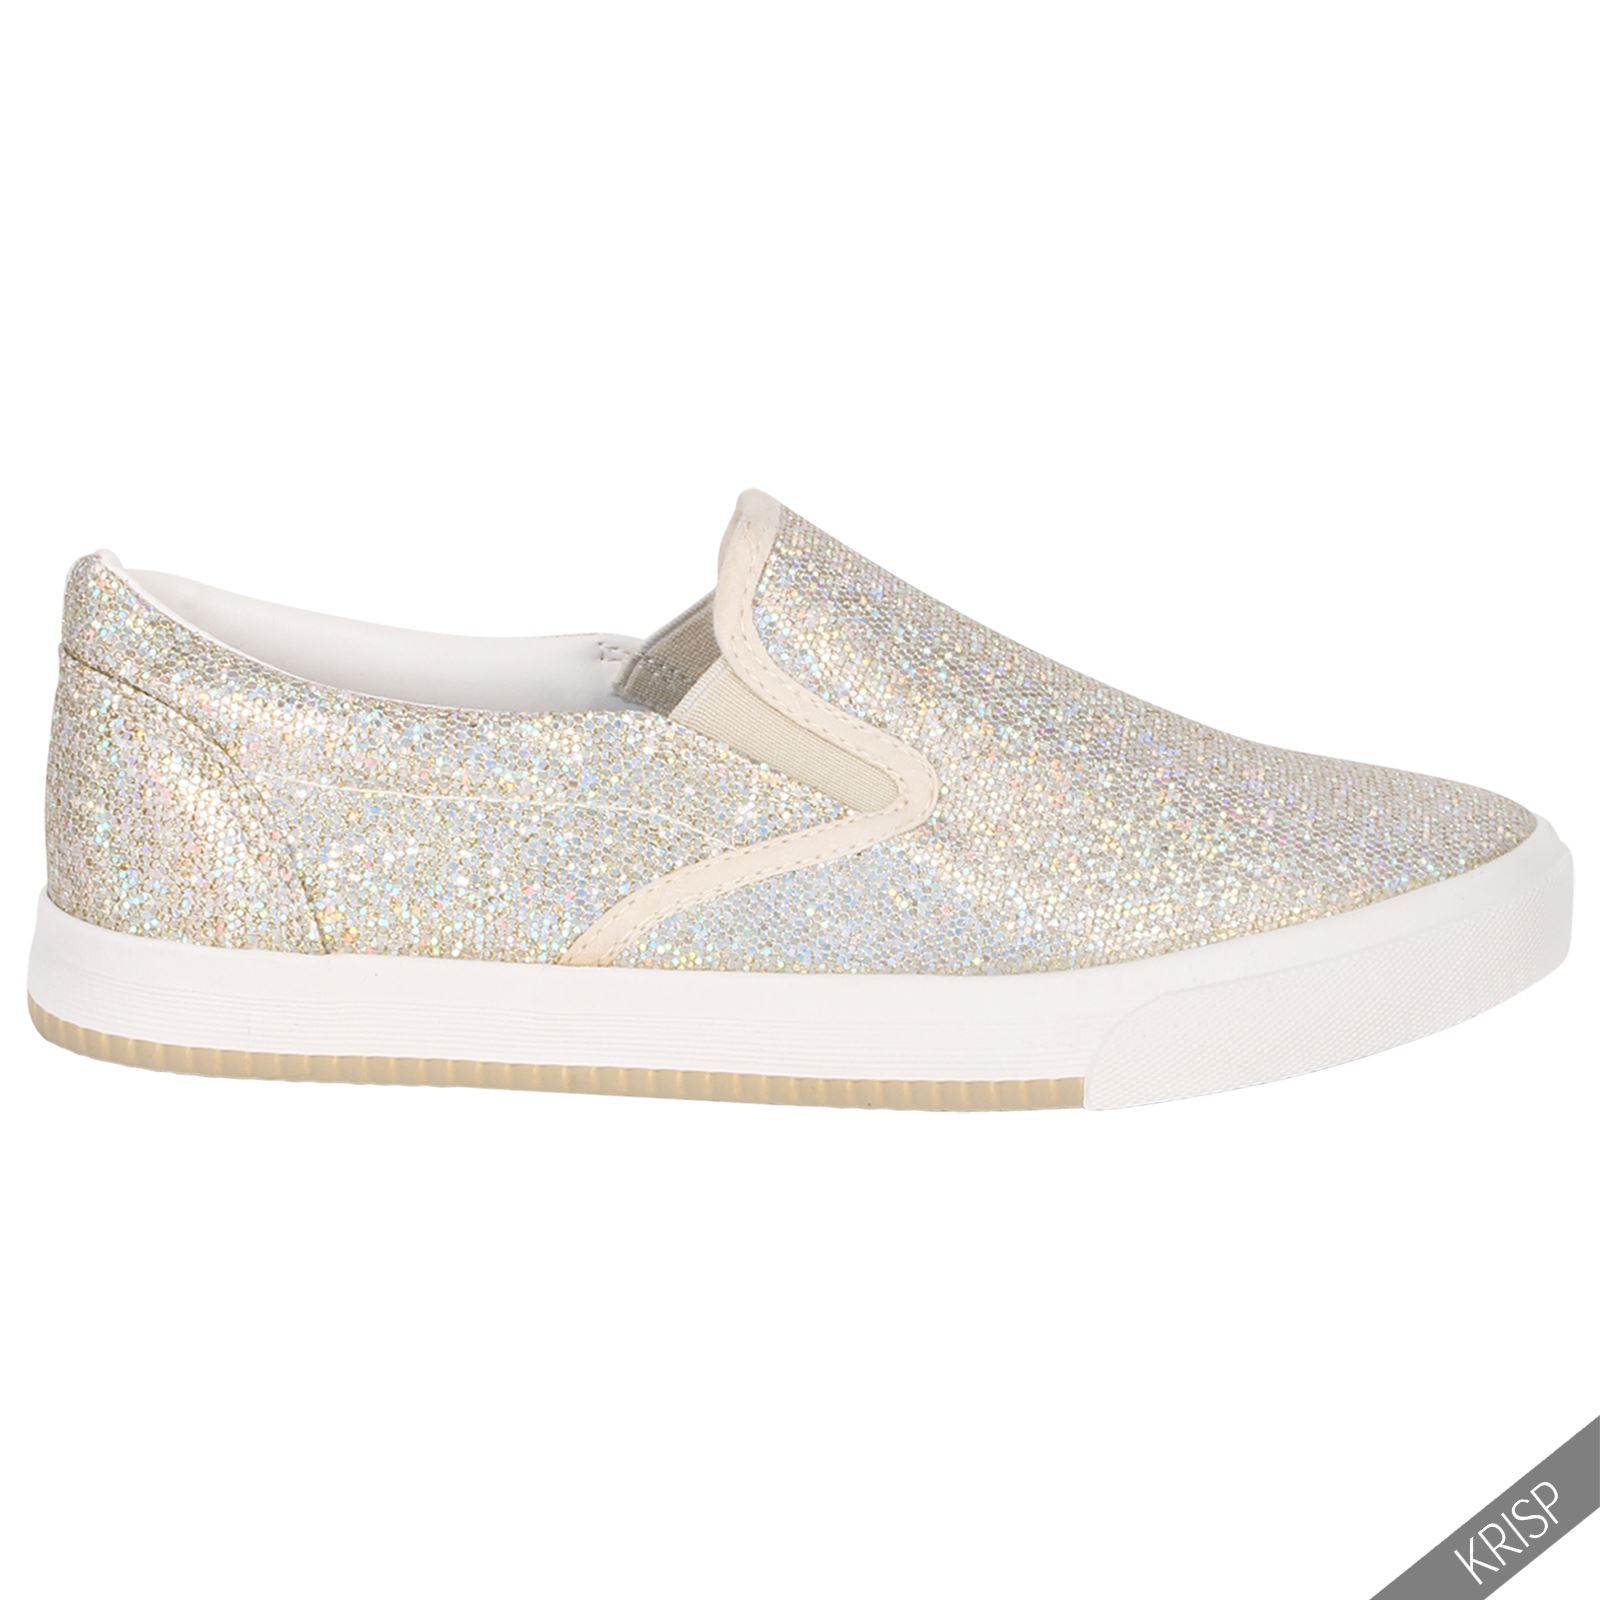 Ladies Gloss Gold Sequin Flat Slip On Plimsolls Skater Pumps Trainers Shoes Size